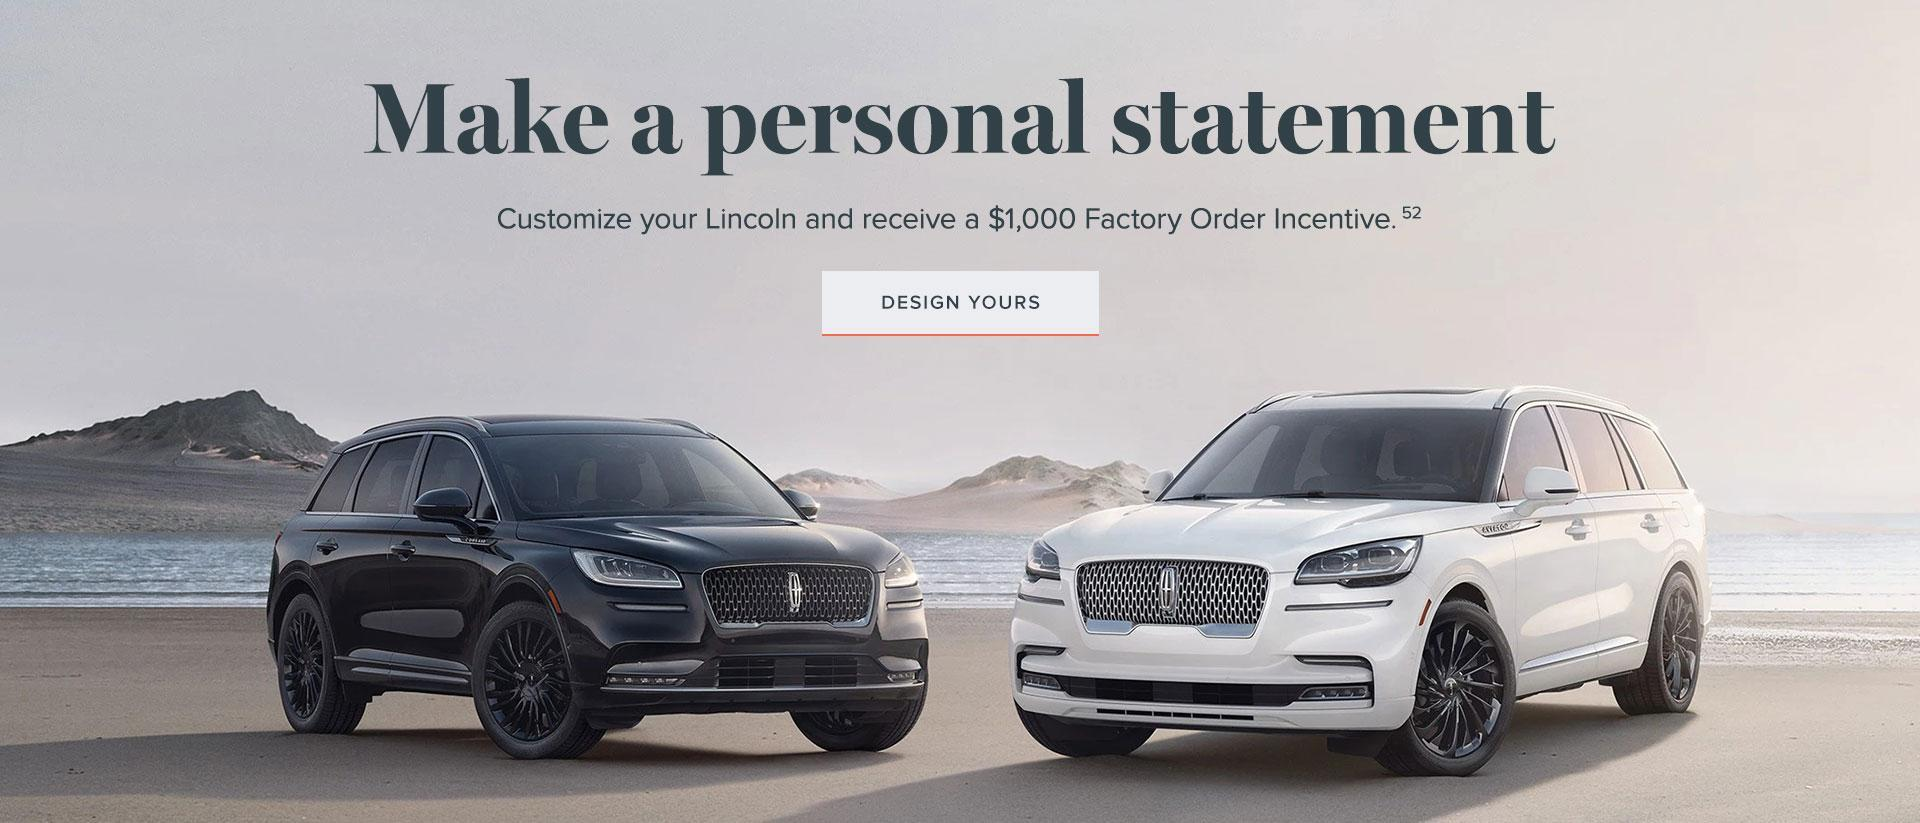 Customize Offer | Lincoln of Canada